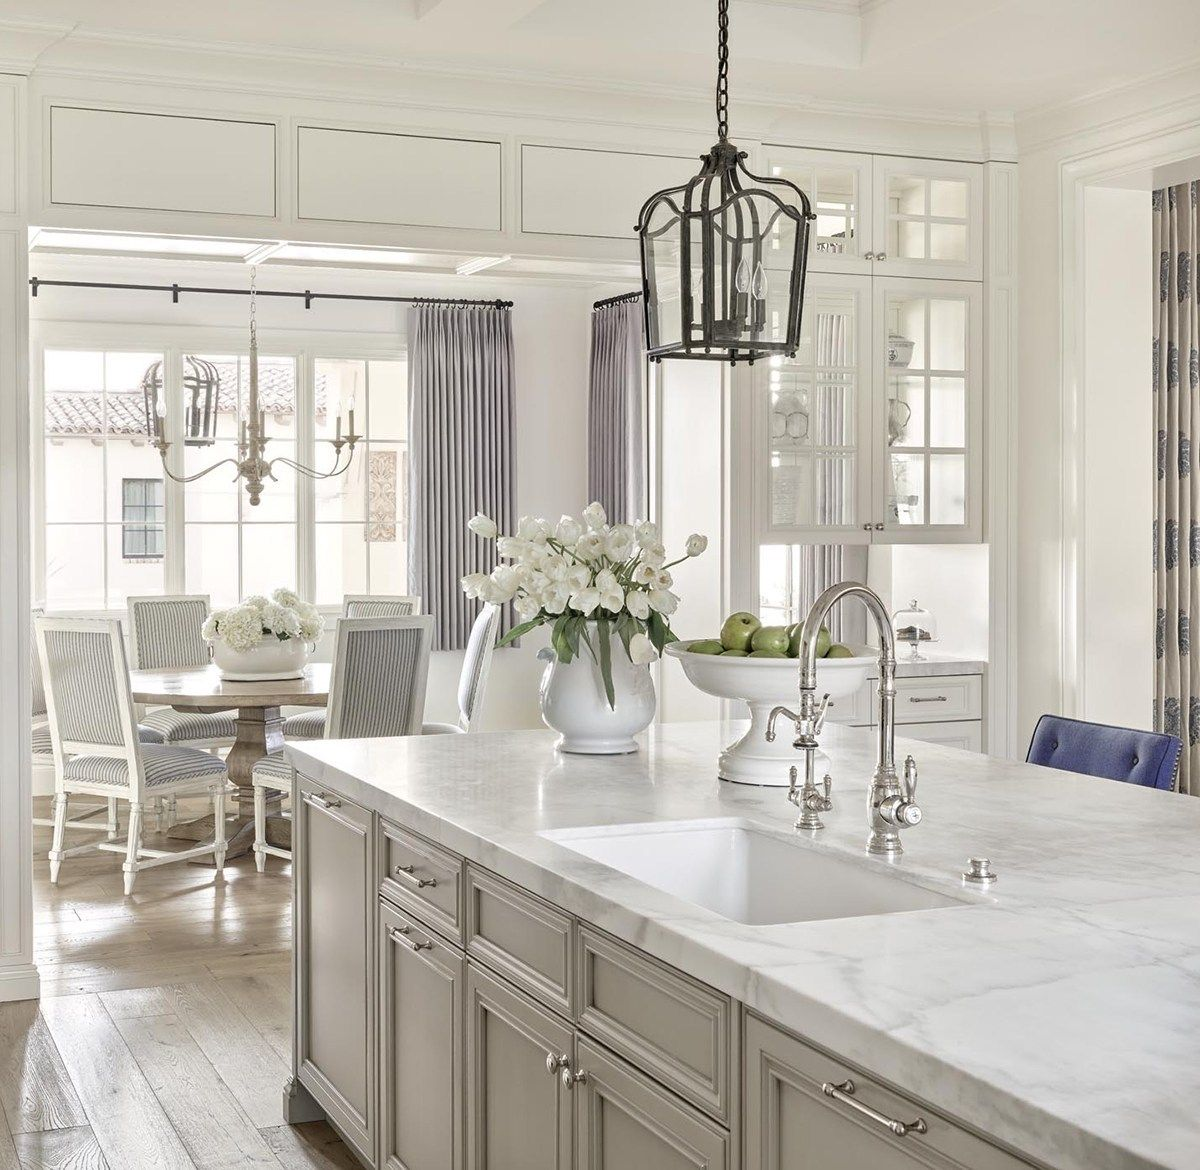 traditional white kitchen in 2020 beige kitchen kitchen design open elegant kitchens on kitchen remodel not white id=68565